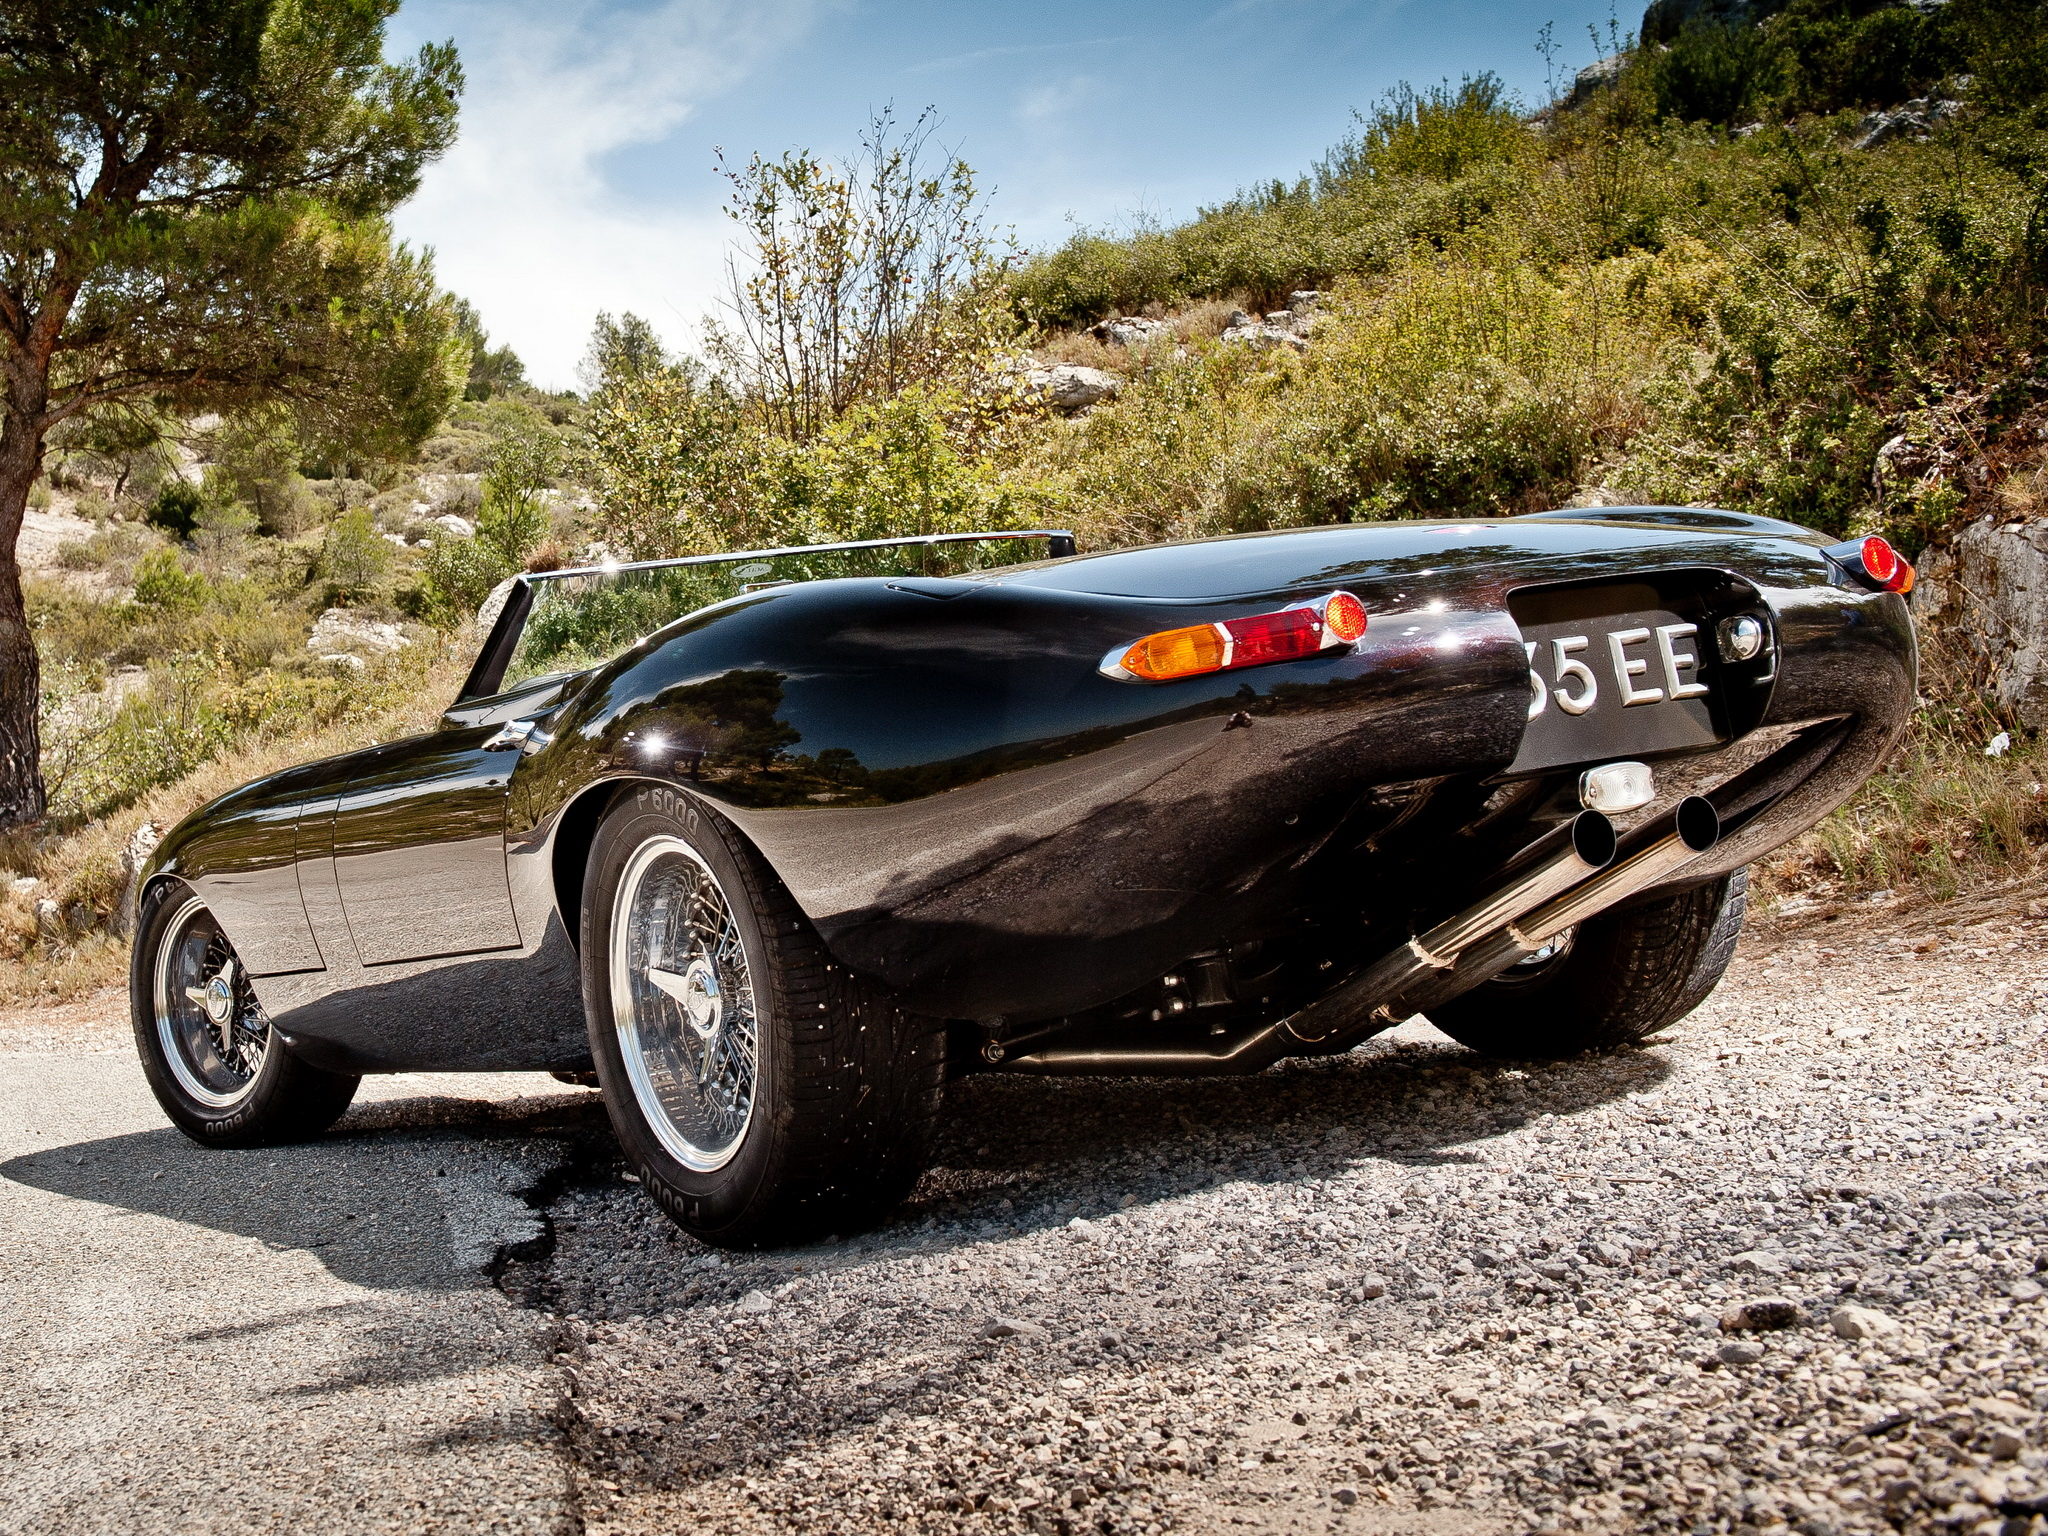 2011 Jaguar Eagle Lightweight Speedster Supercar G HD Wallpapers Download free images and photos [musssic.tk]